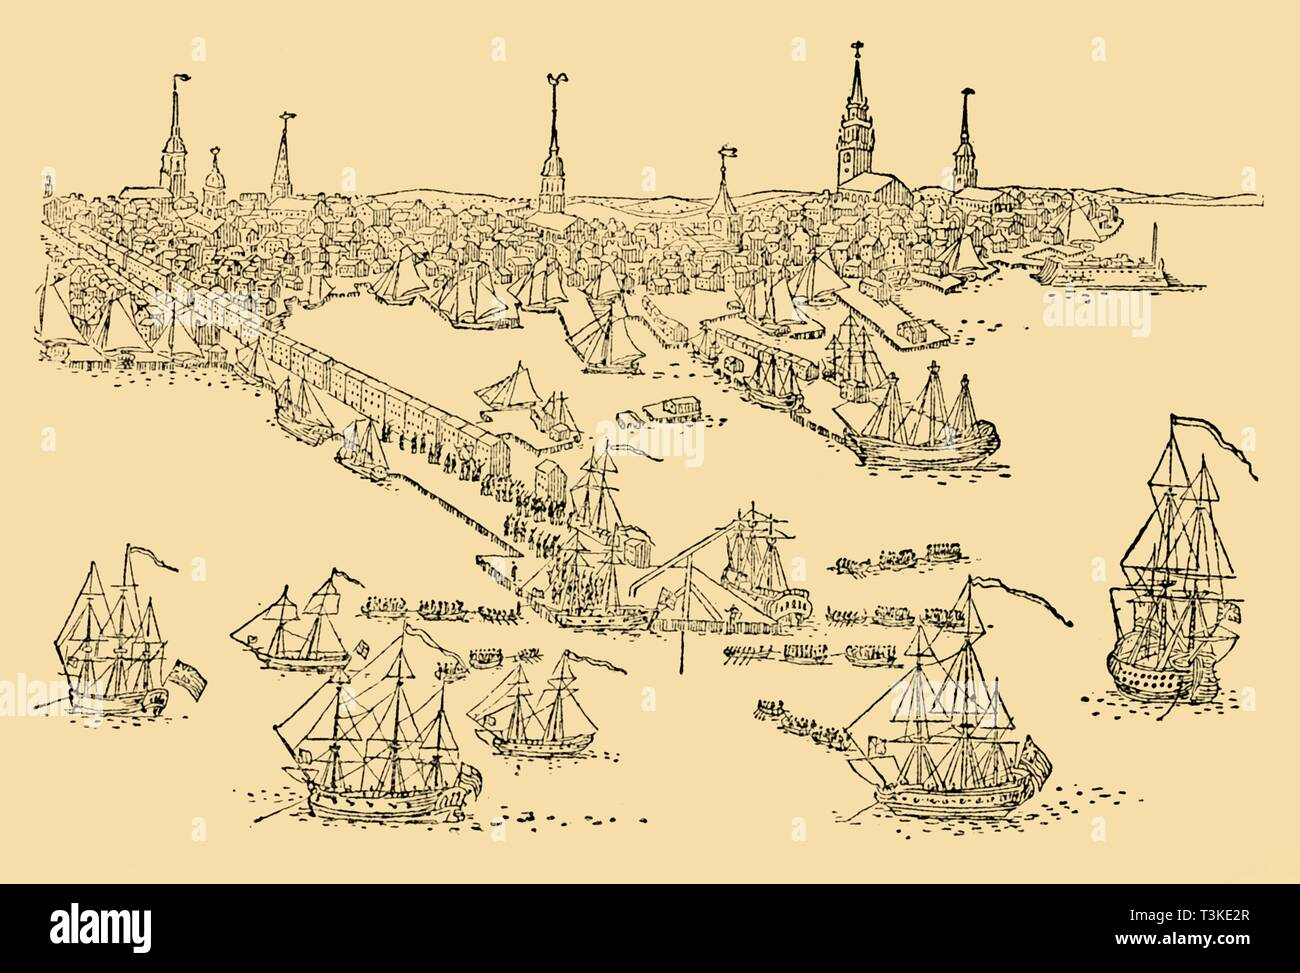 'English Ships of War at Boston (Where The 'Tea-Party' Took Place) In 1768', c1930. Creator: Unknown. - Stock Image